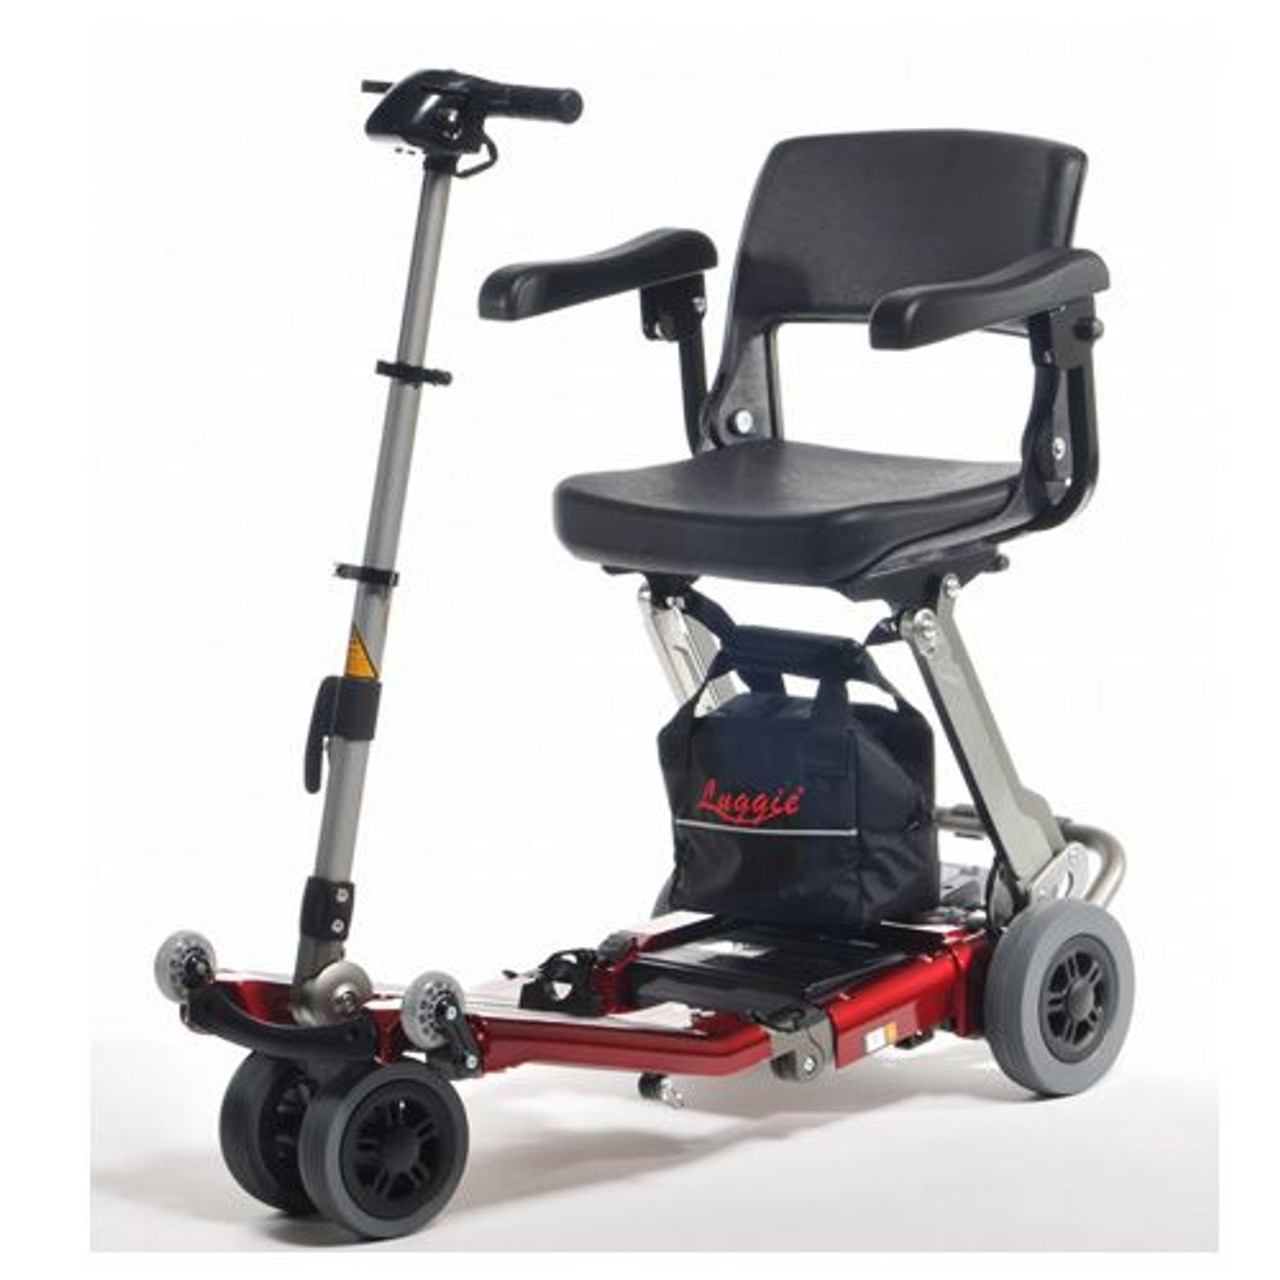 2019 Luggie Deluxe Scooter